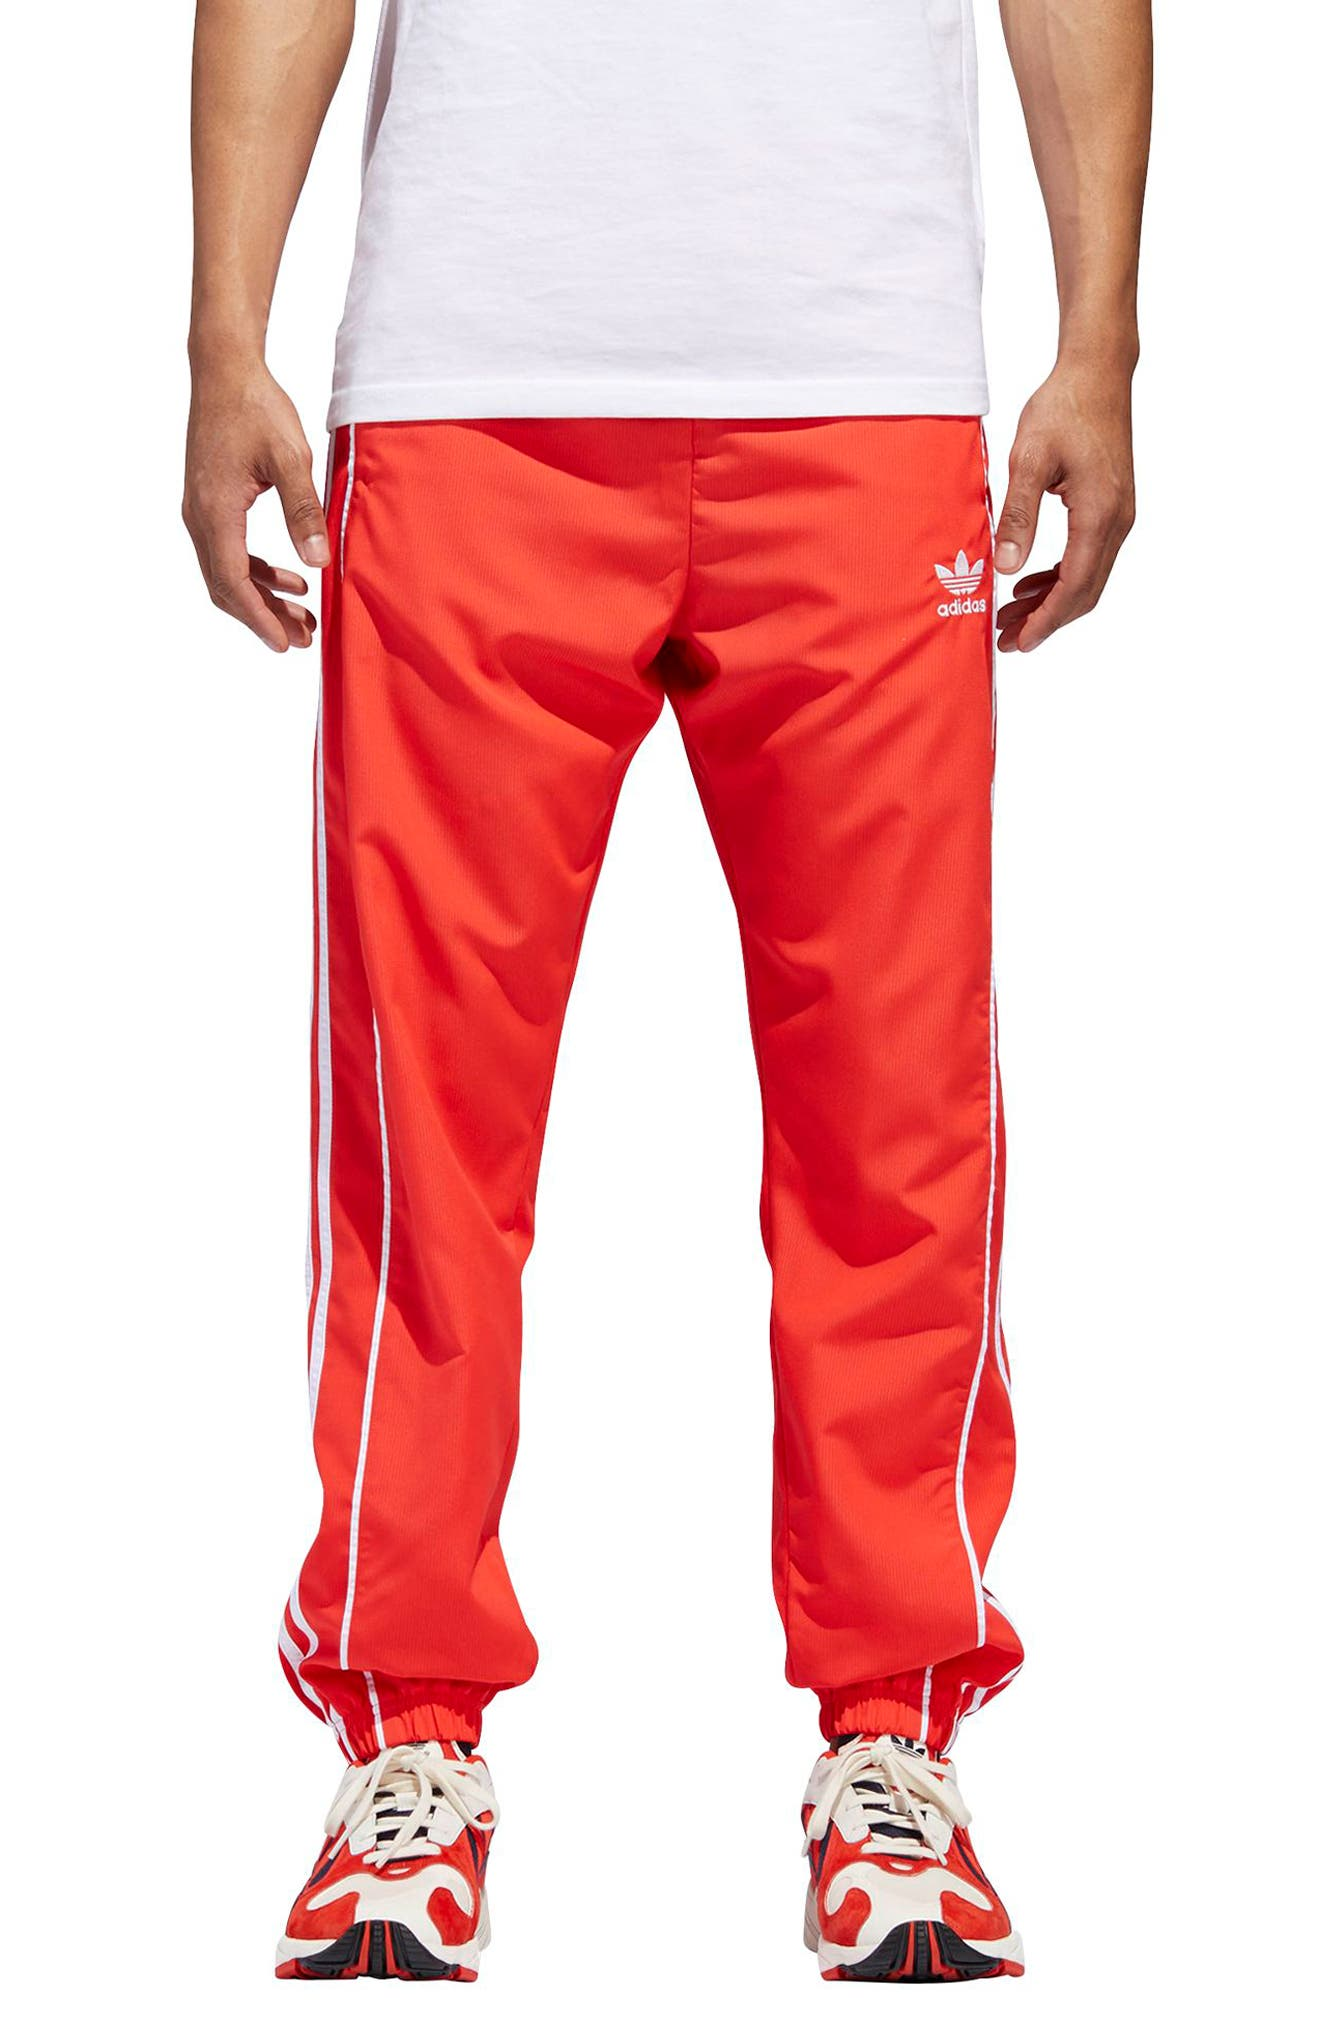 Authentics Ripstop Track Pants,                         Main,                         color, HI-RES RED/ WHITE